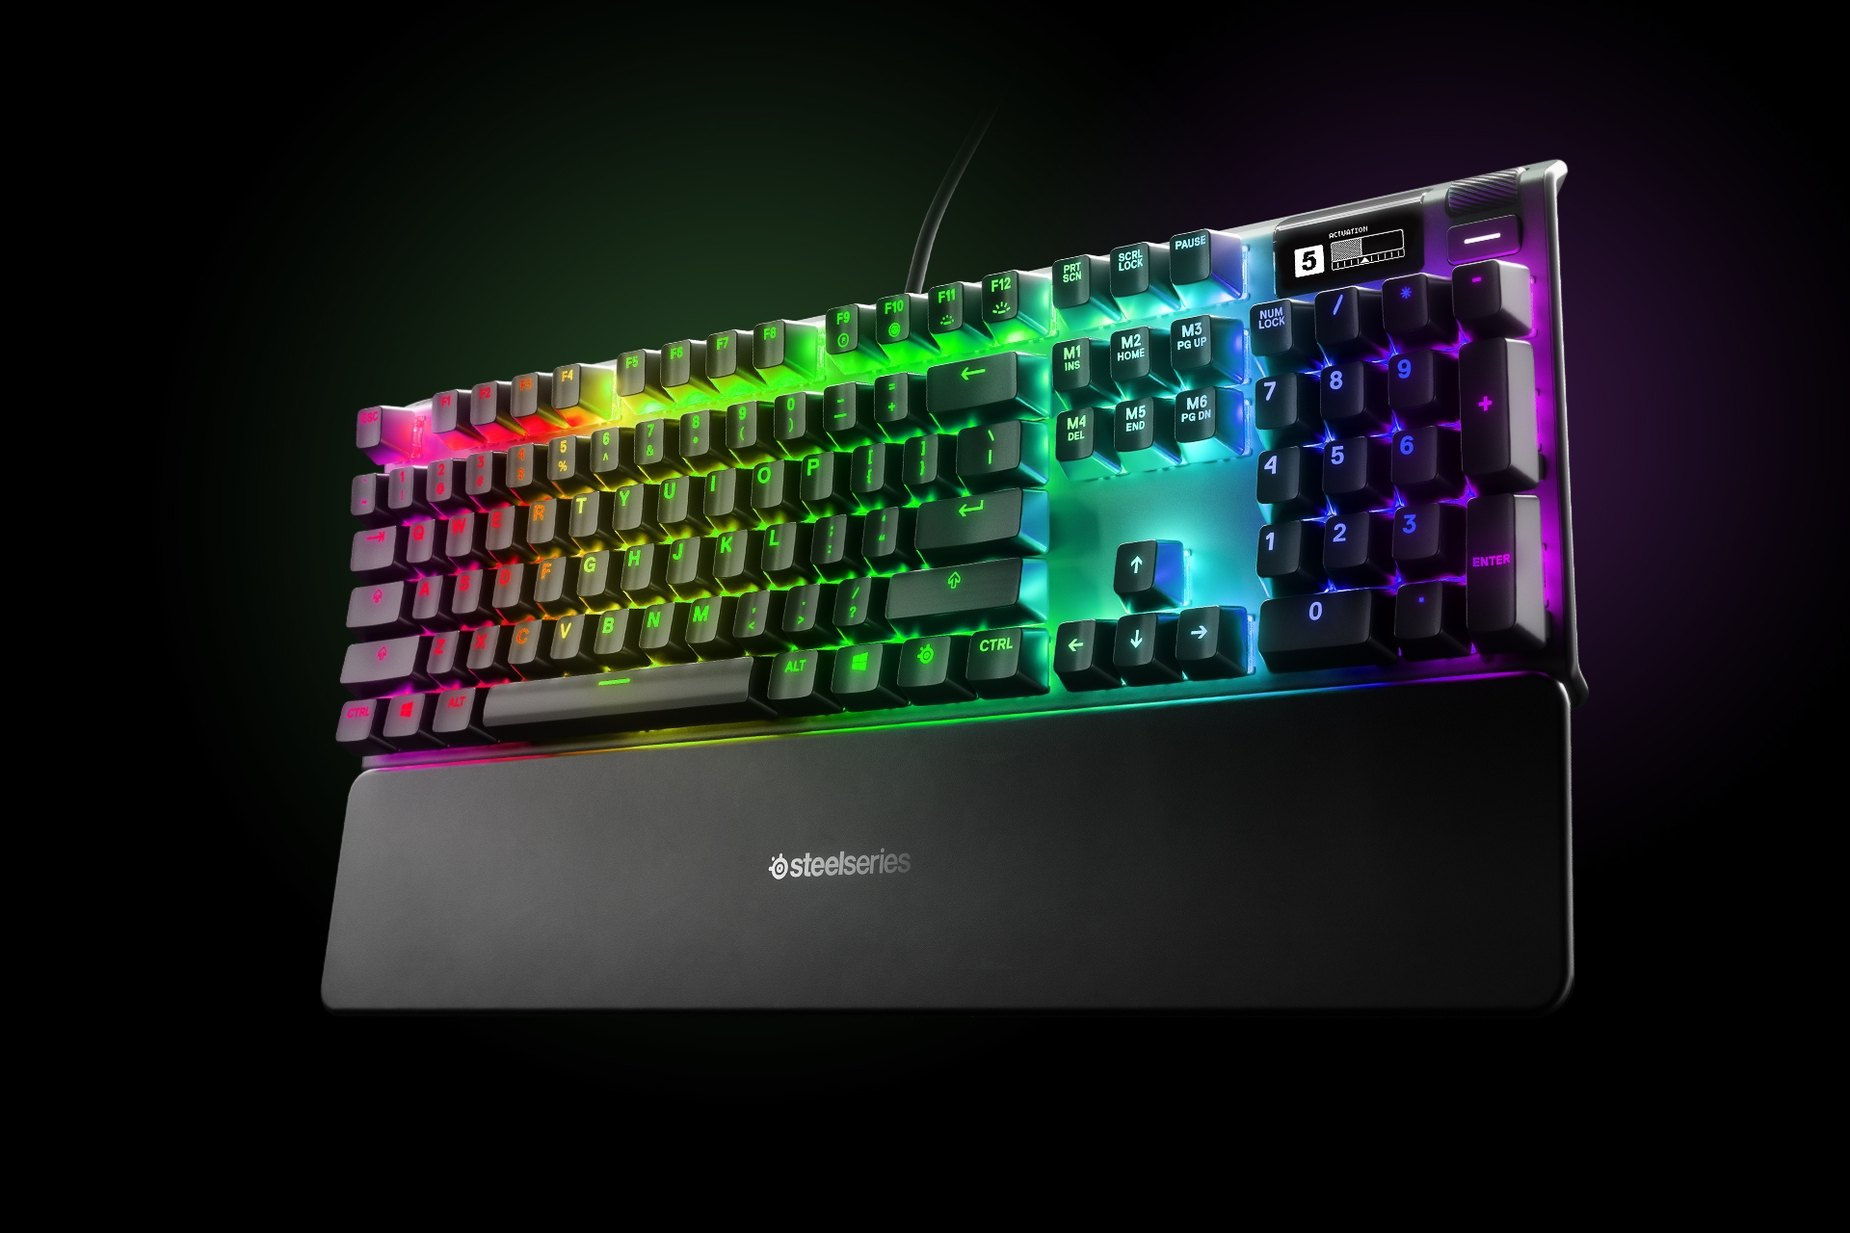 UK İngilizce - Apex Pro gaming keyboard with the illumination lit up on dark background, also shows the OLED screen and controls used to change settings, switch actuation, and adjust audio